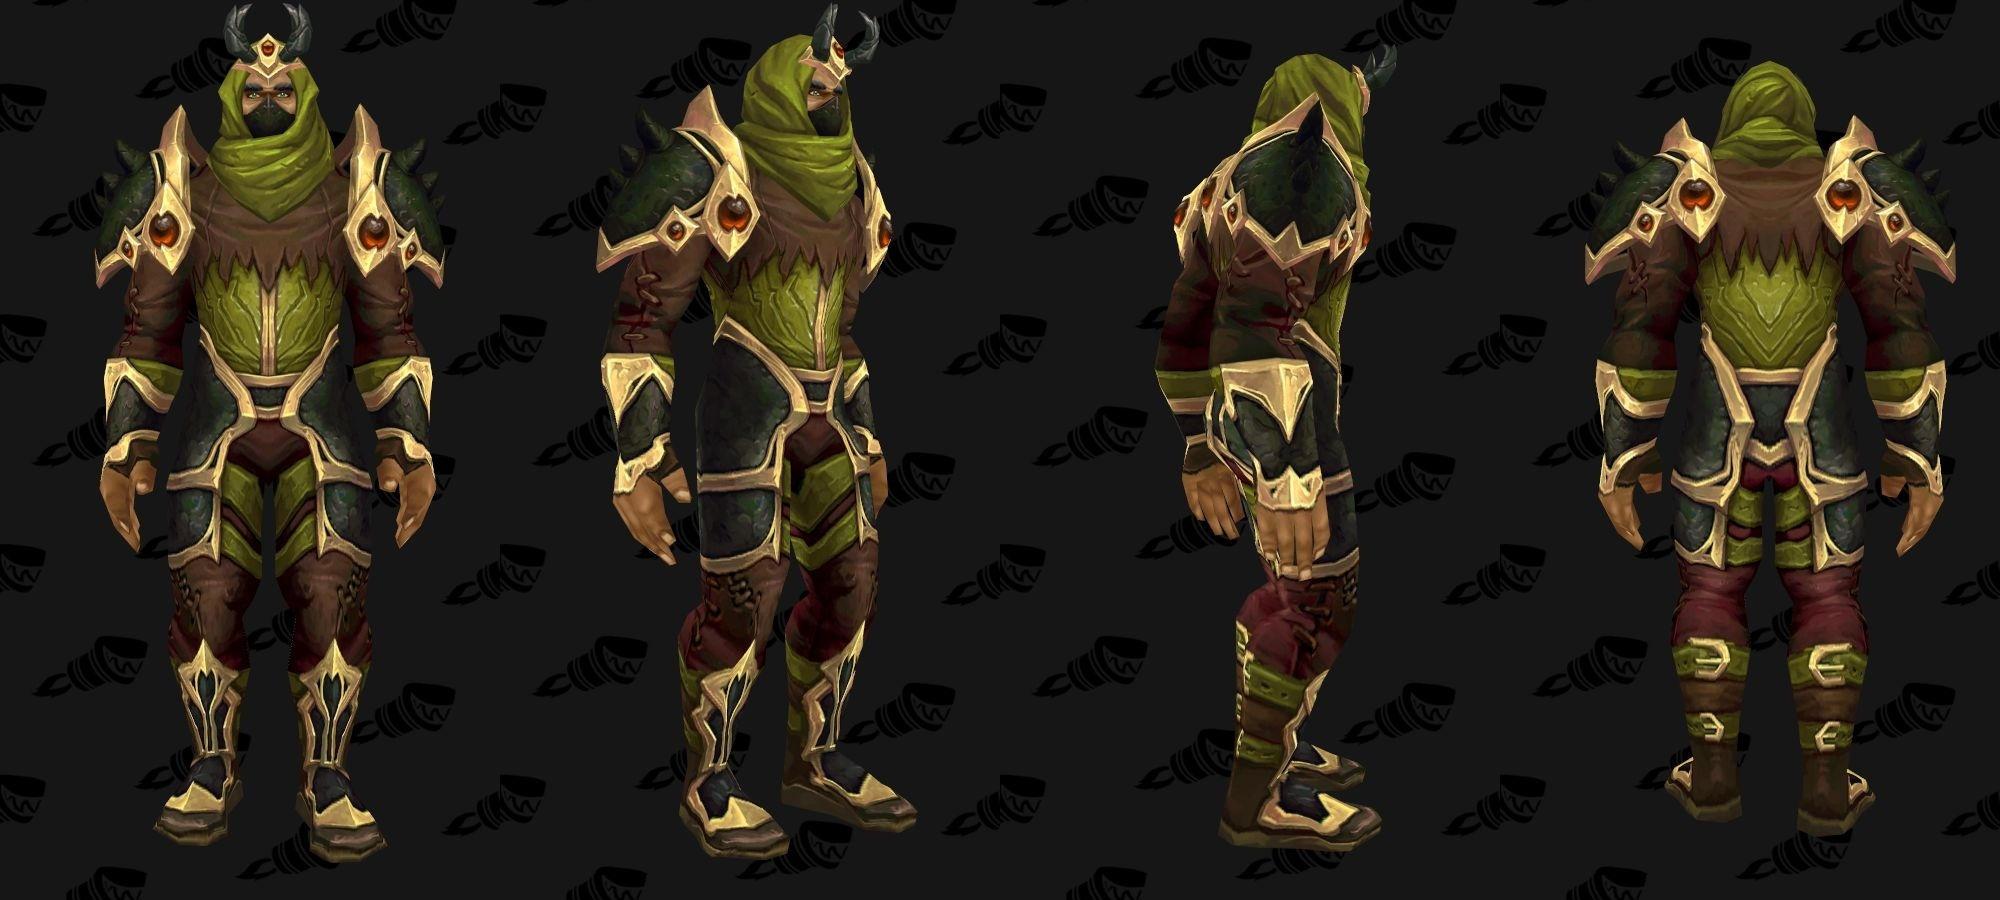 Downtime Tuesday #41 Legion Dungeon Armor Sets & Downtime Tuesday #41 Legion Dungeon Armor Sets - Wowhead News